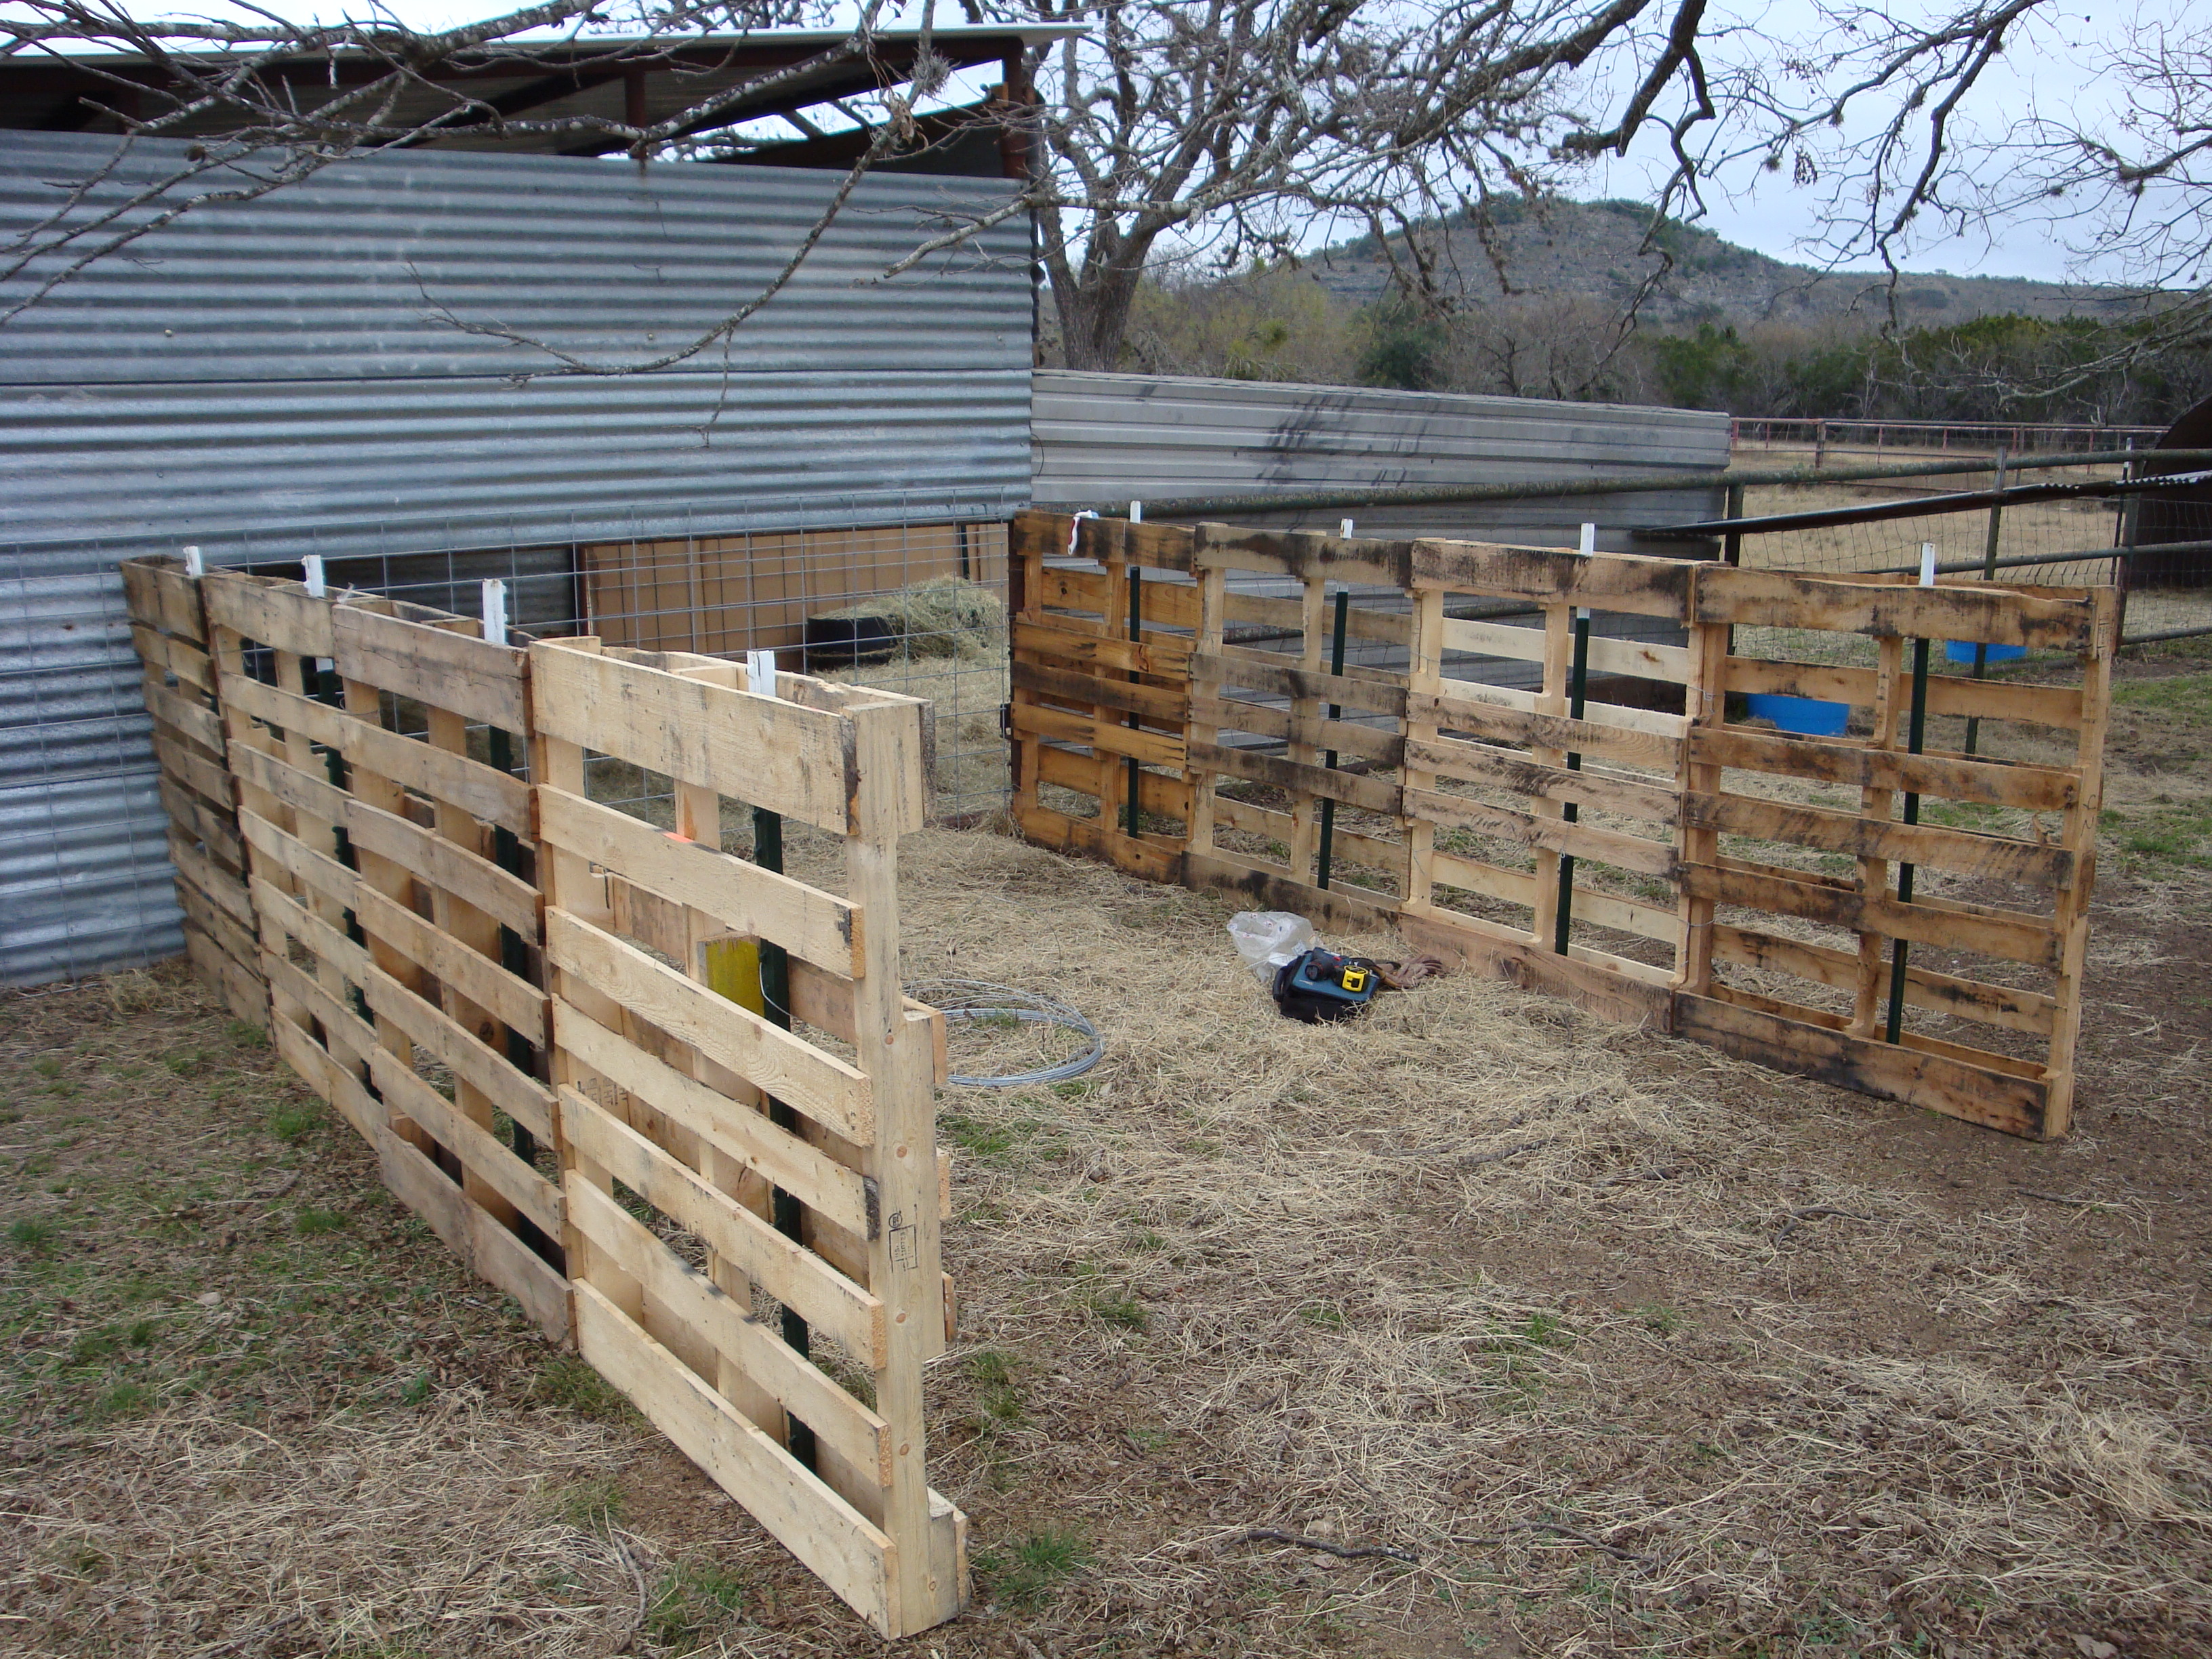 Diy Calf Shelter : Sheep shelter pixshark images galleries with a